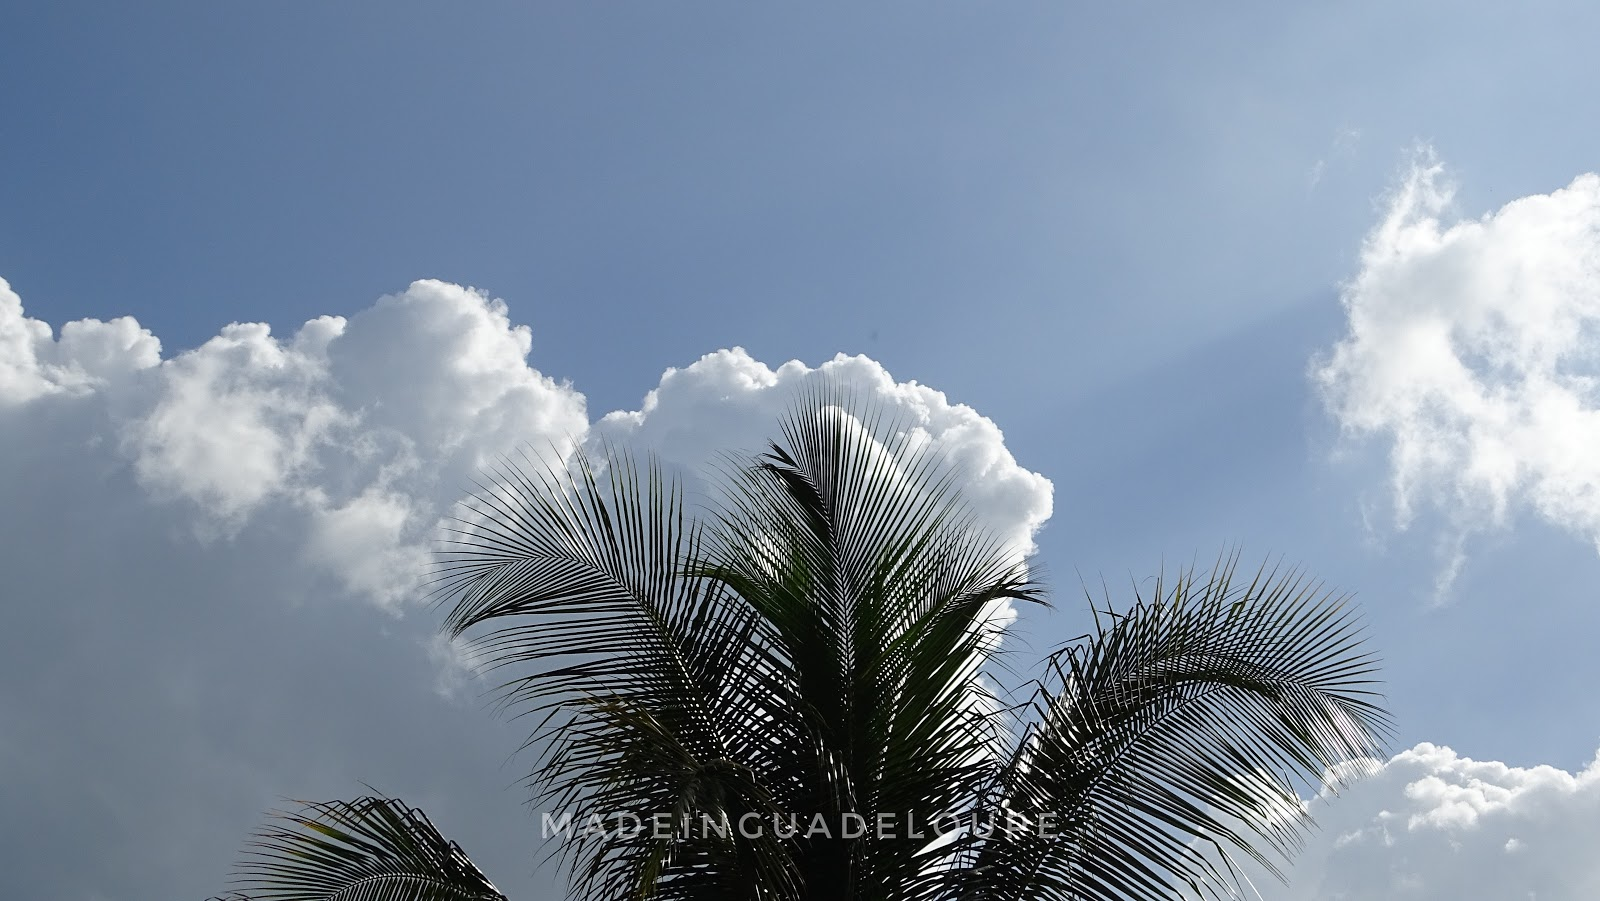 guadeloupe sky caribbean blog lifestyle france madeinguadeloupe antilles french west indies